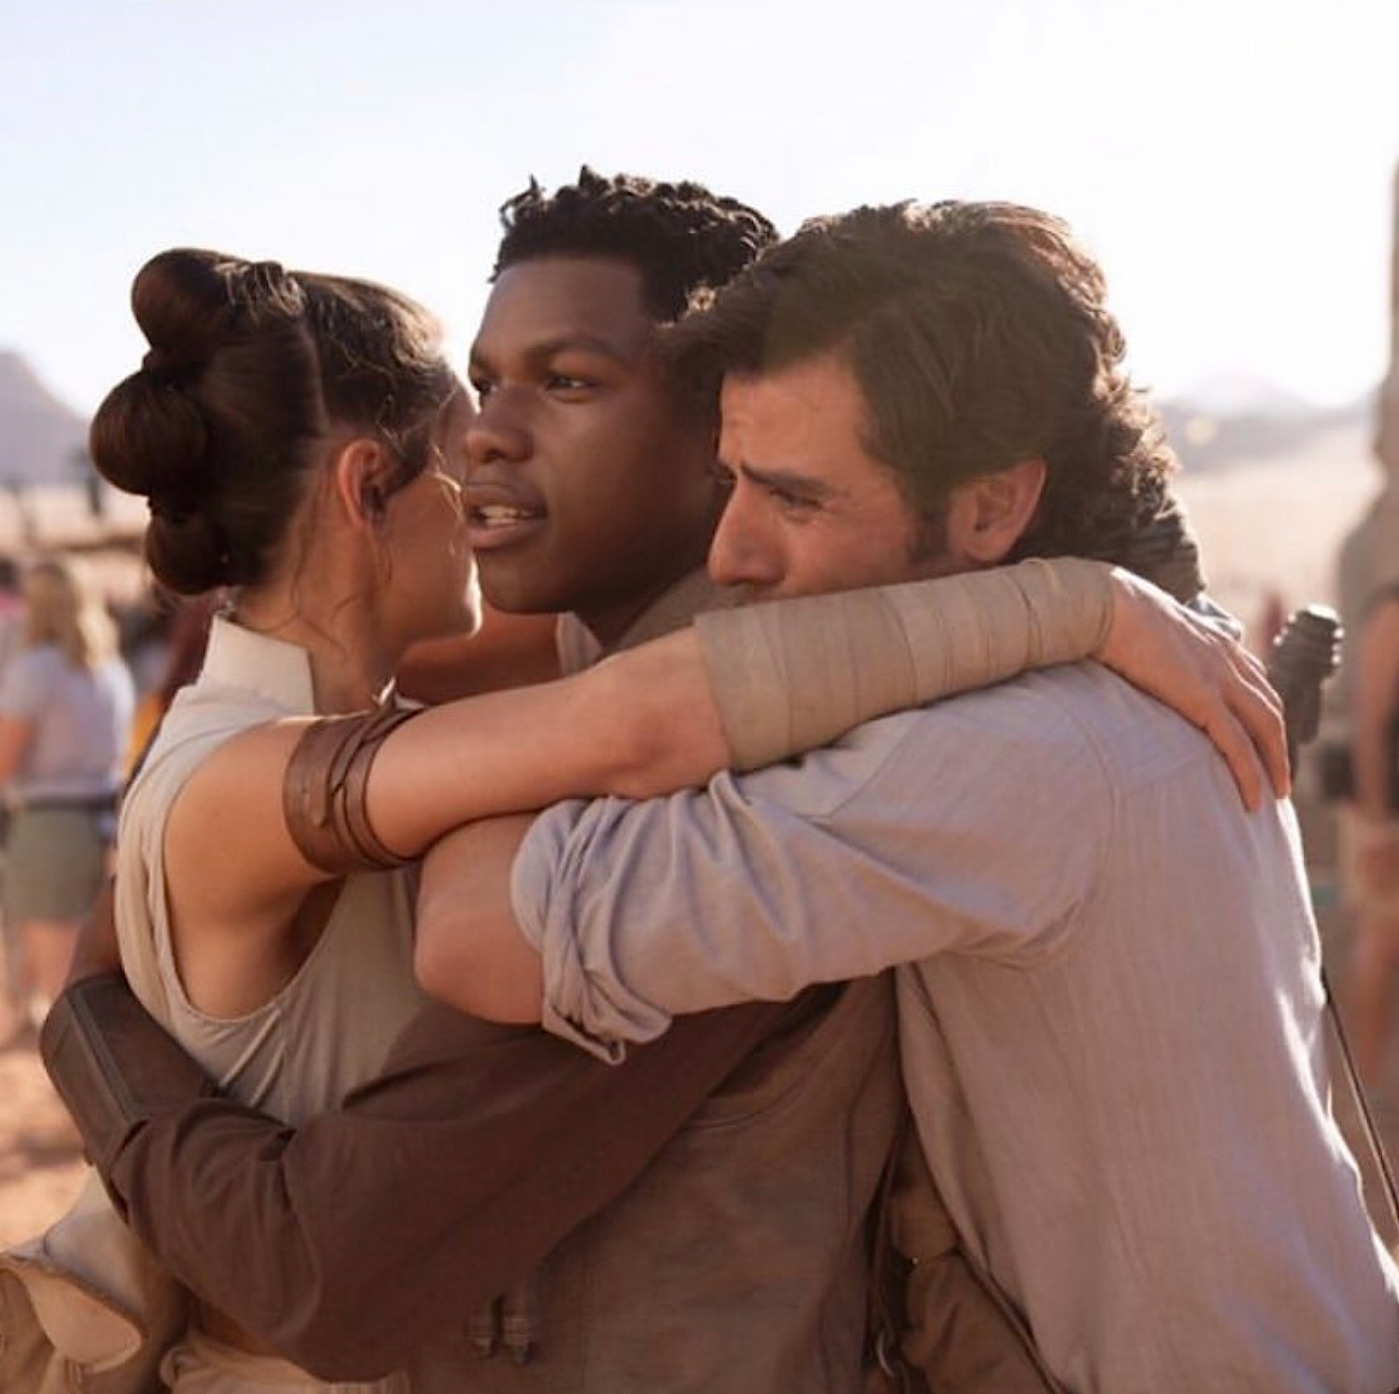 Star Wars Fans Think They Already Found A Spoiler in J.J. Abrams's Episode IX Photo